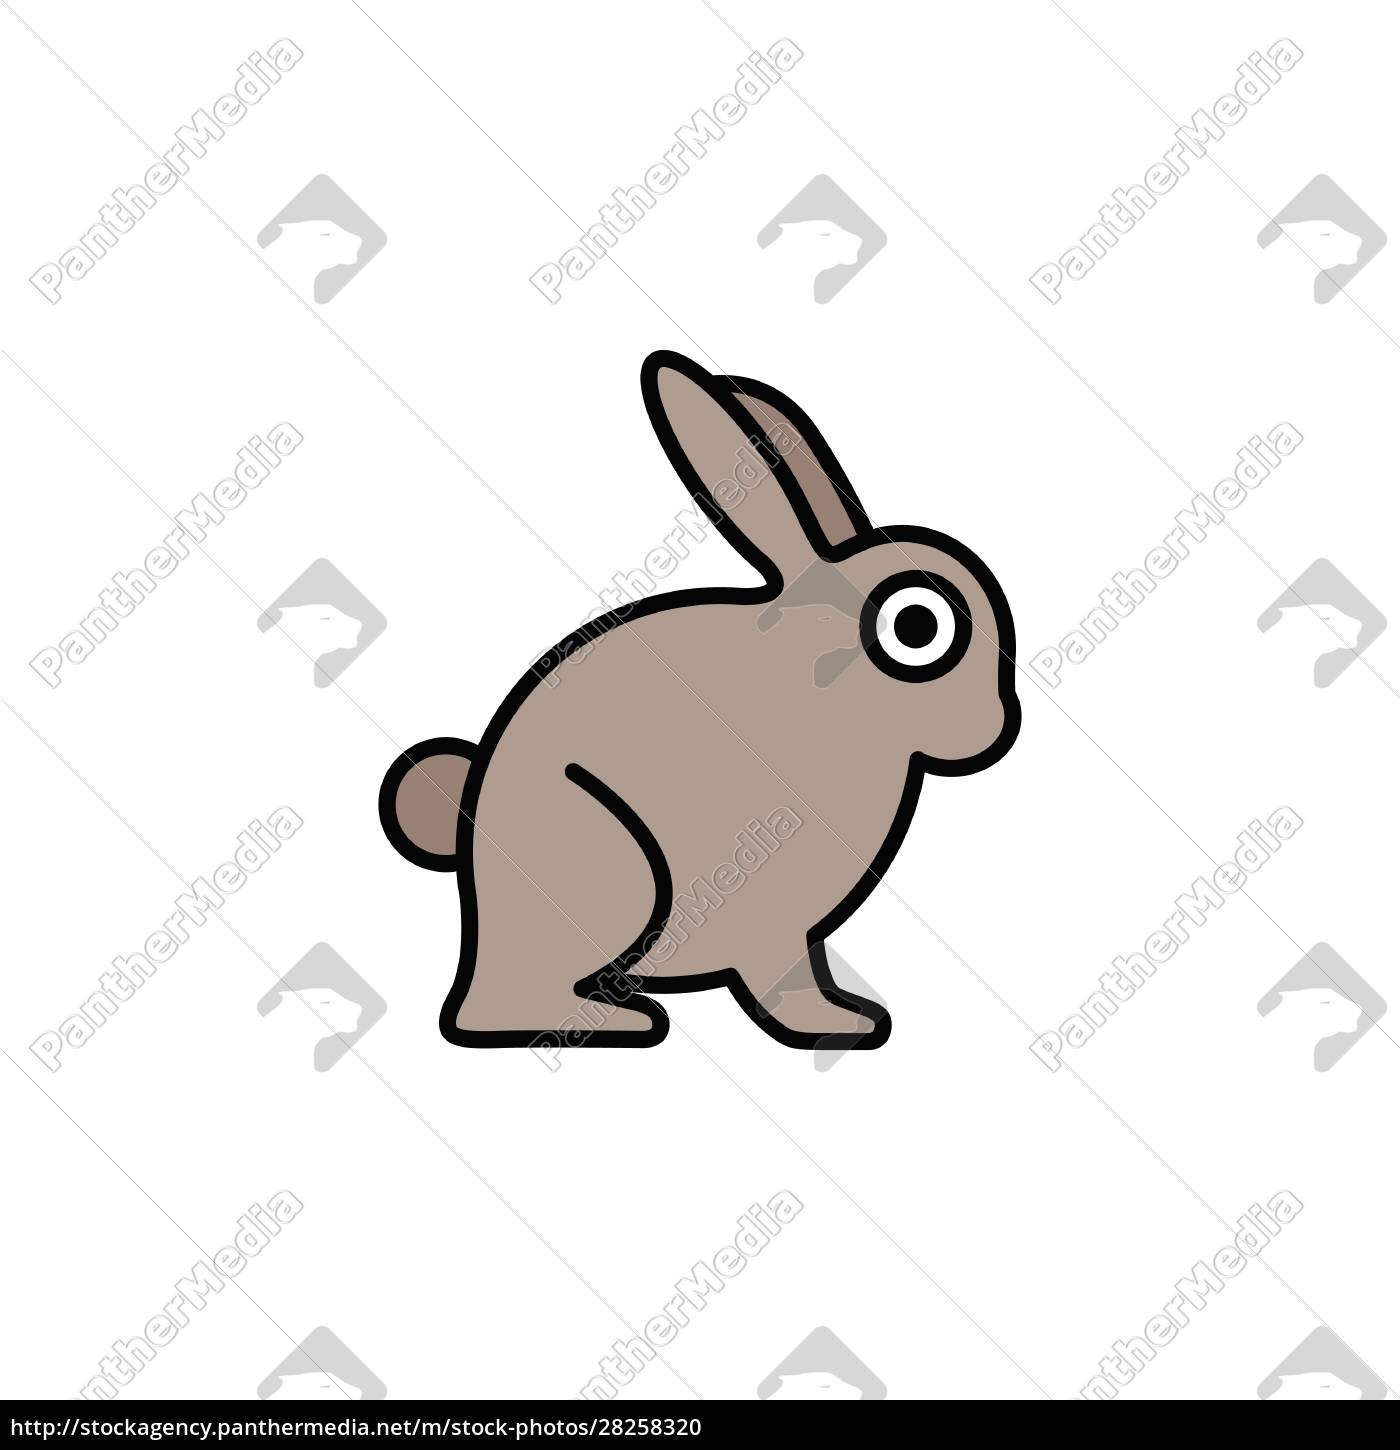 rabbit., filled, color, icon., animal, vector - 28258320